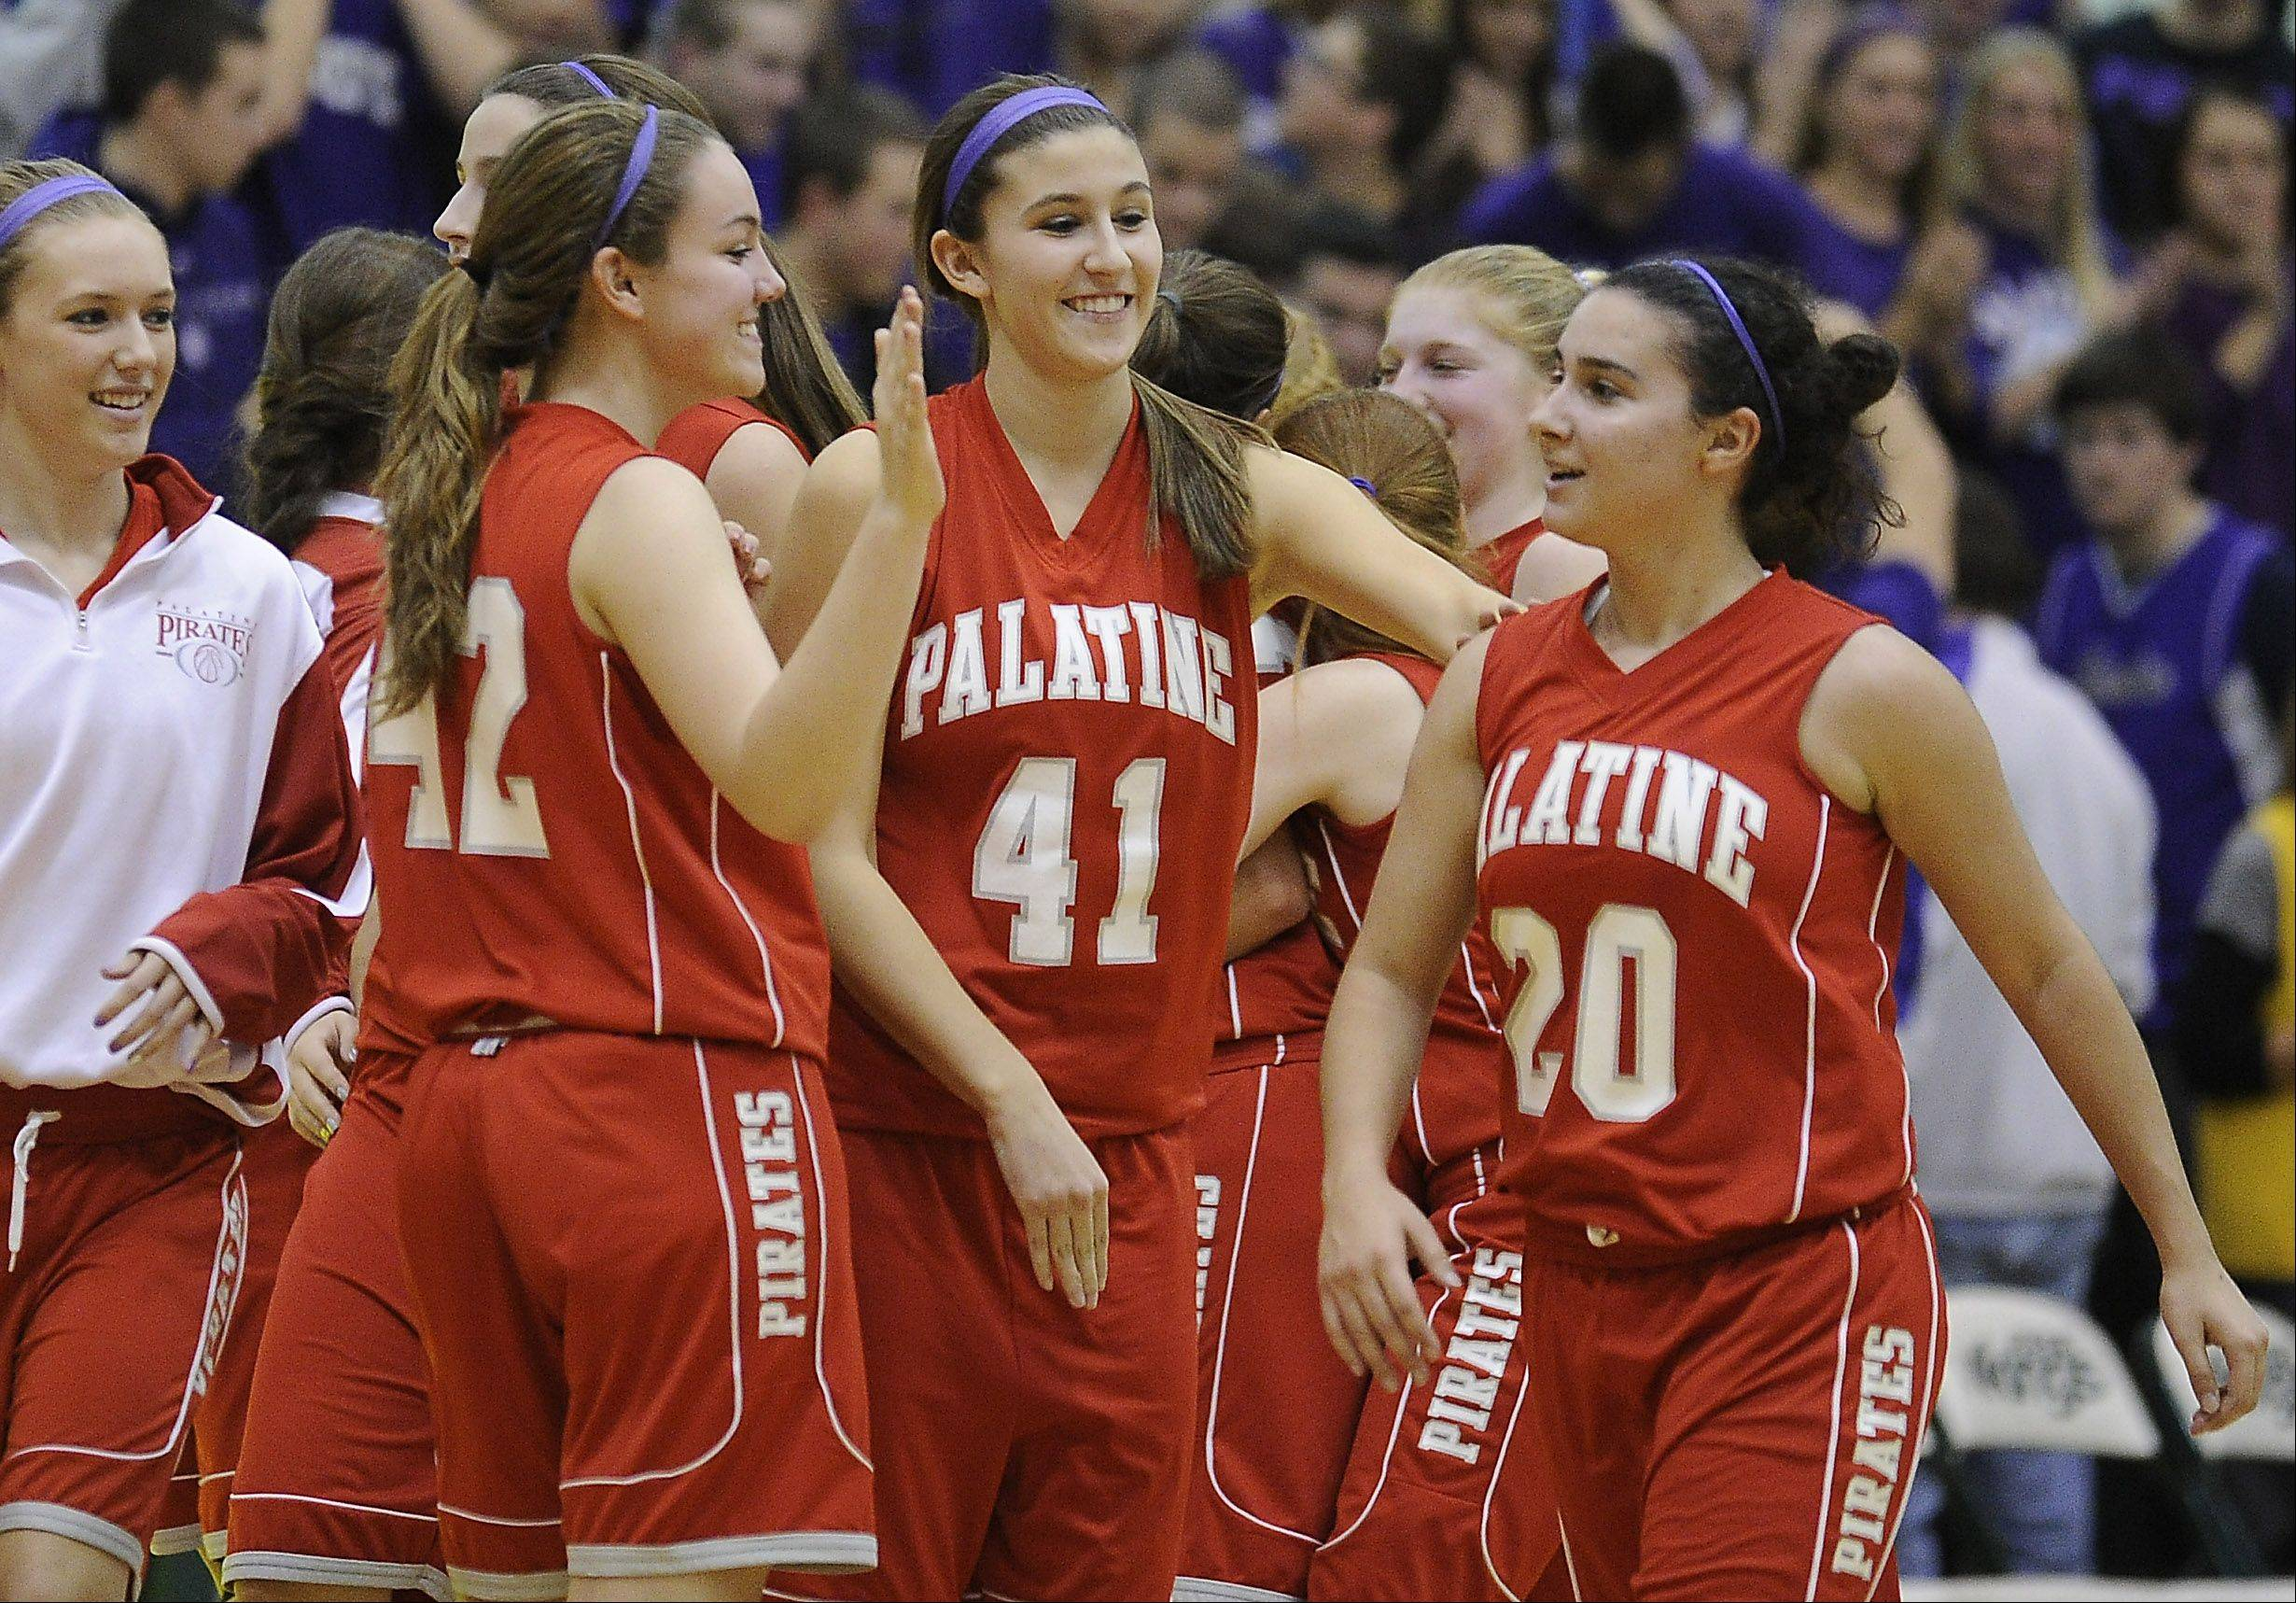 Palatine�s Carrissa Multon, Marissa Masini and Nia Pappas celebrate their victory over Fremd in the girls varsity basketball game at Fremd High School on Friday.